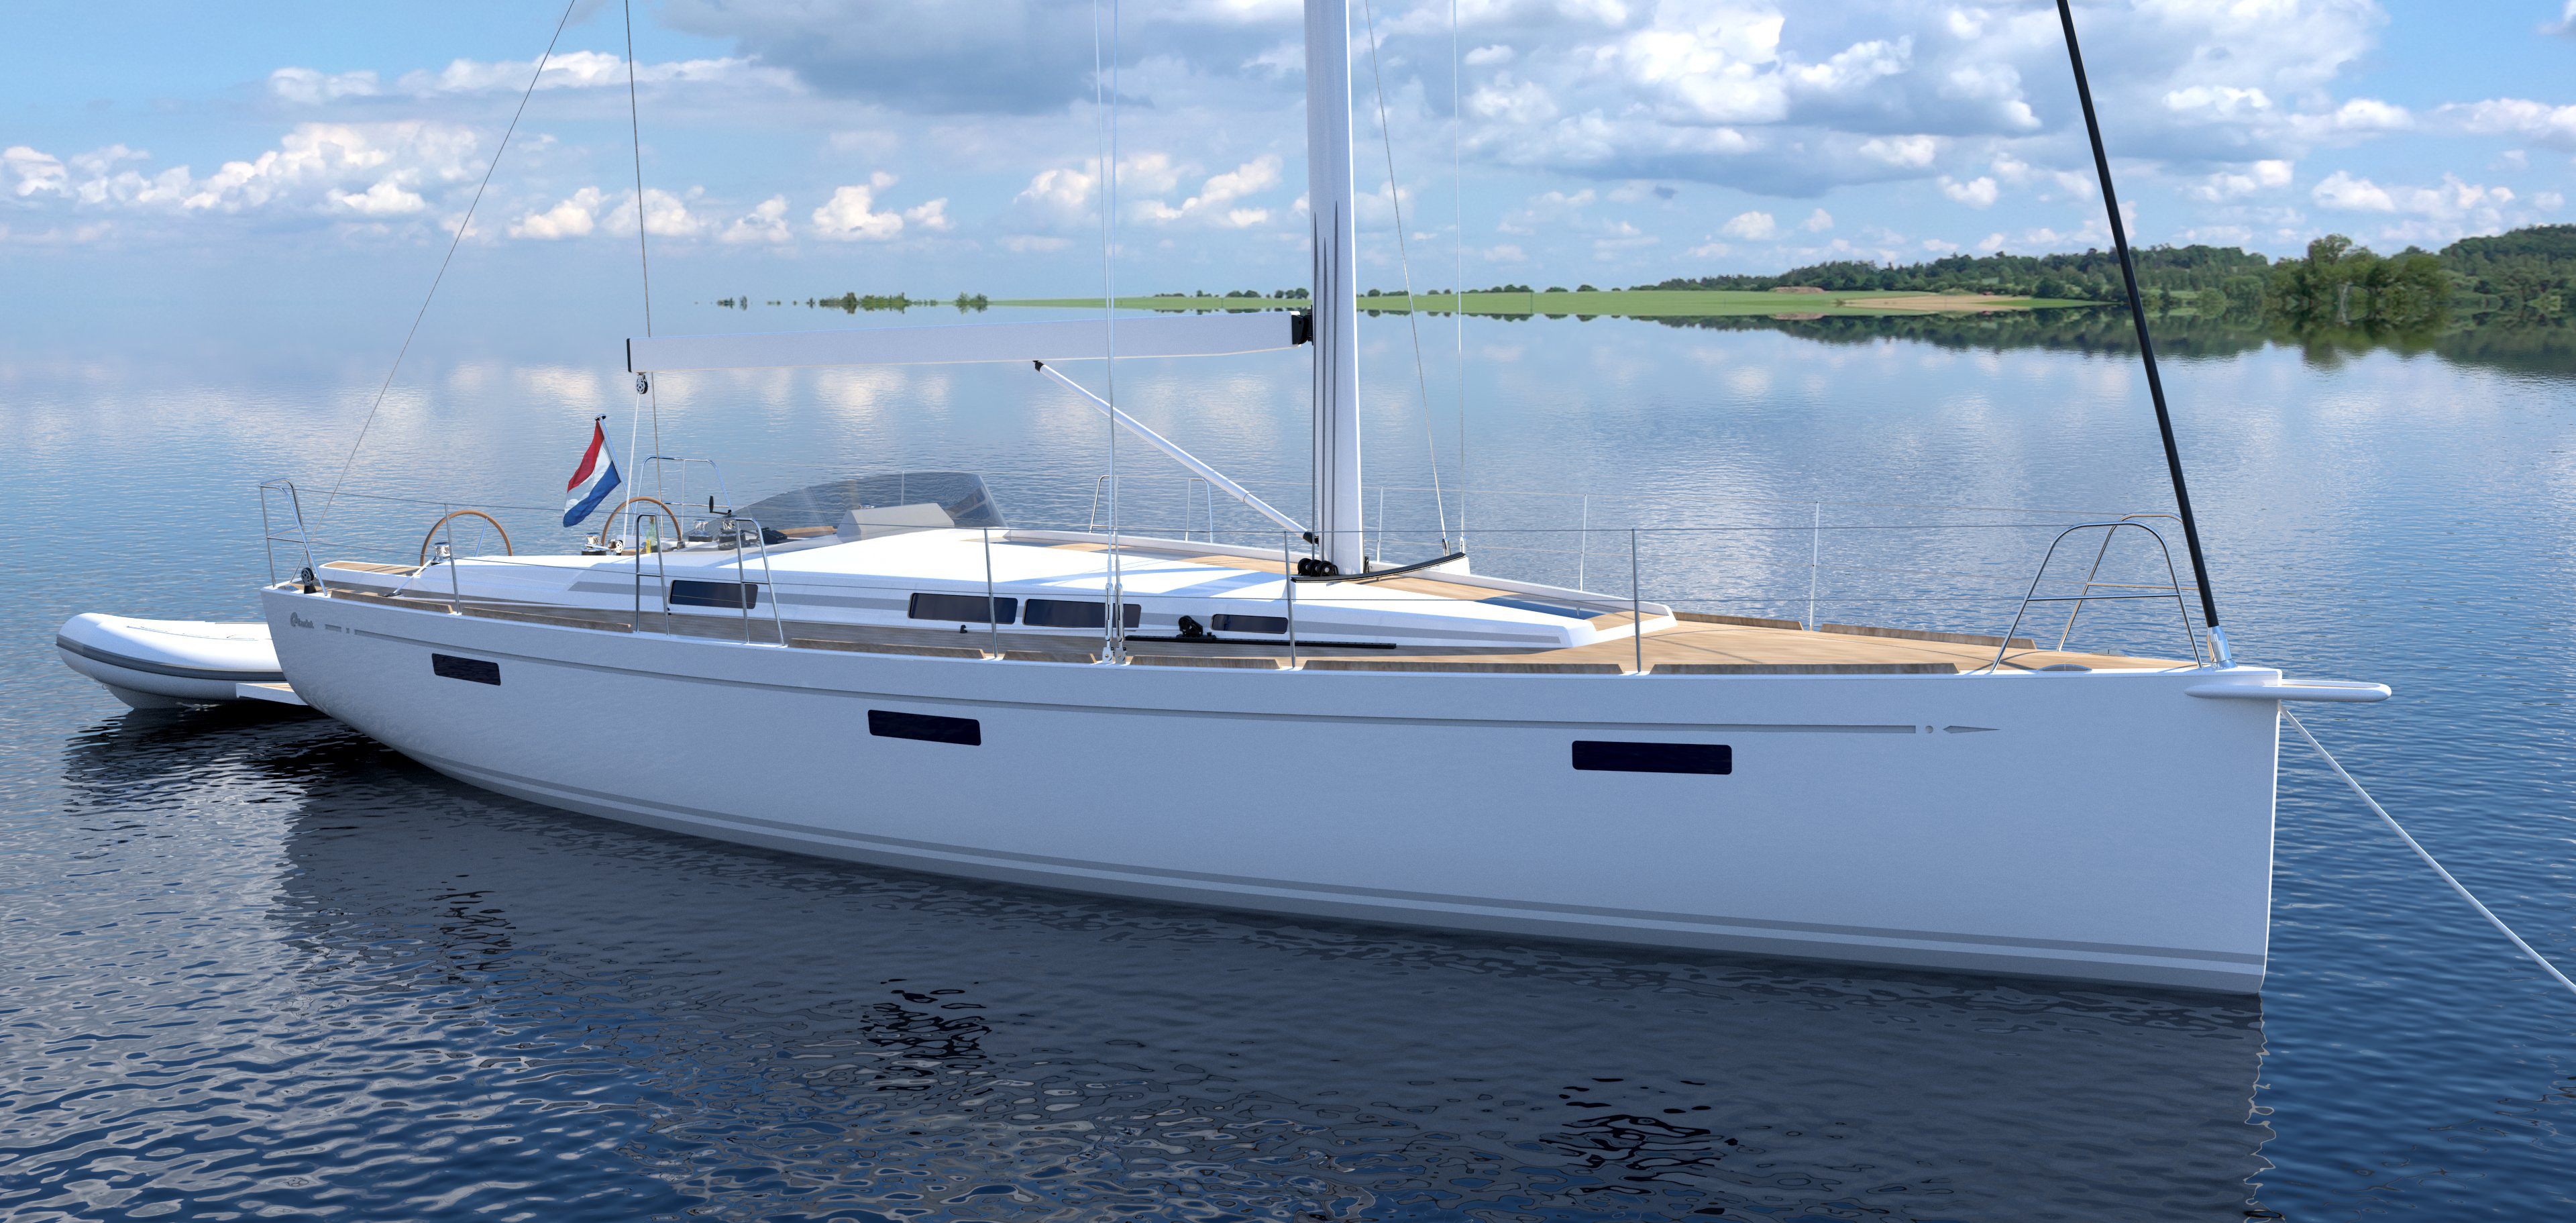 C-Yacht 42-47 white with gray trim